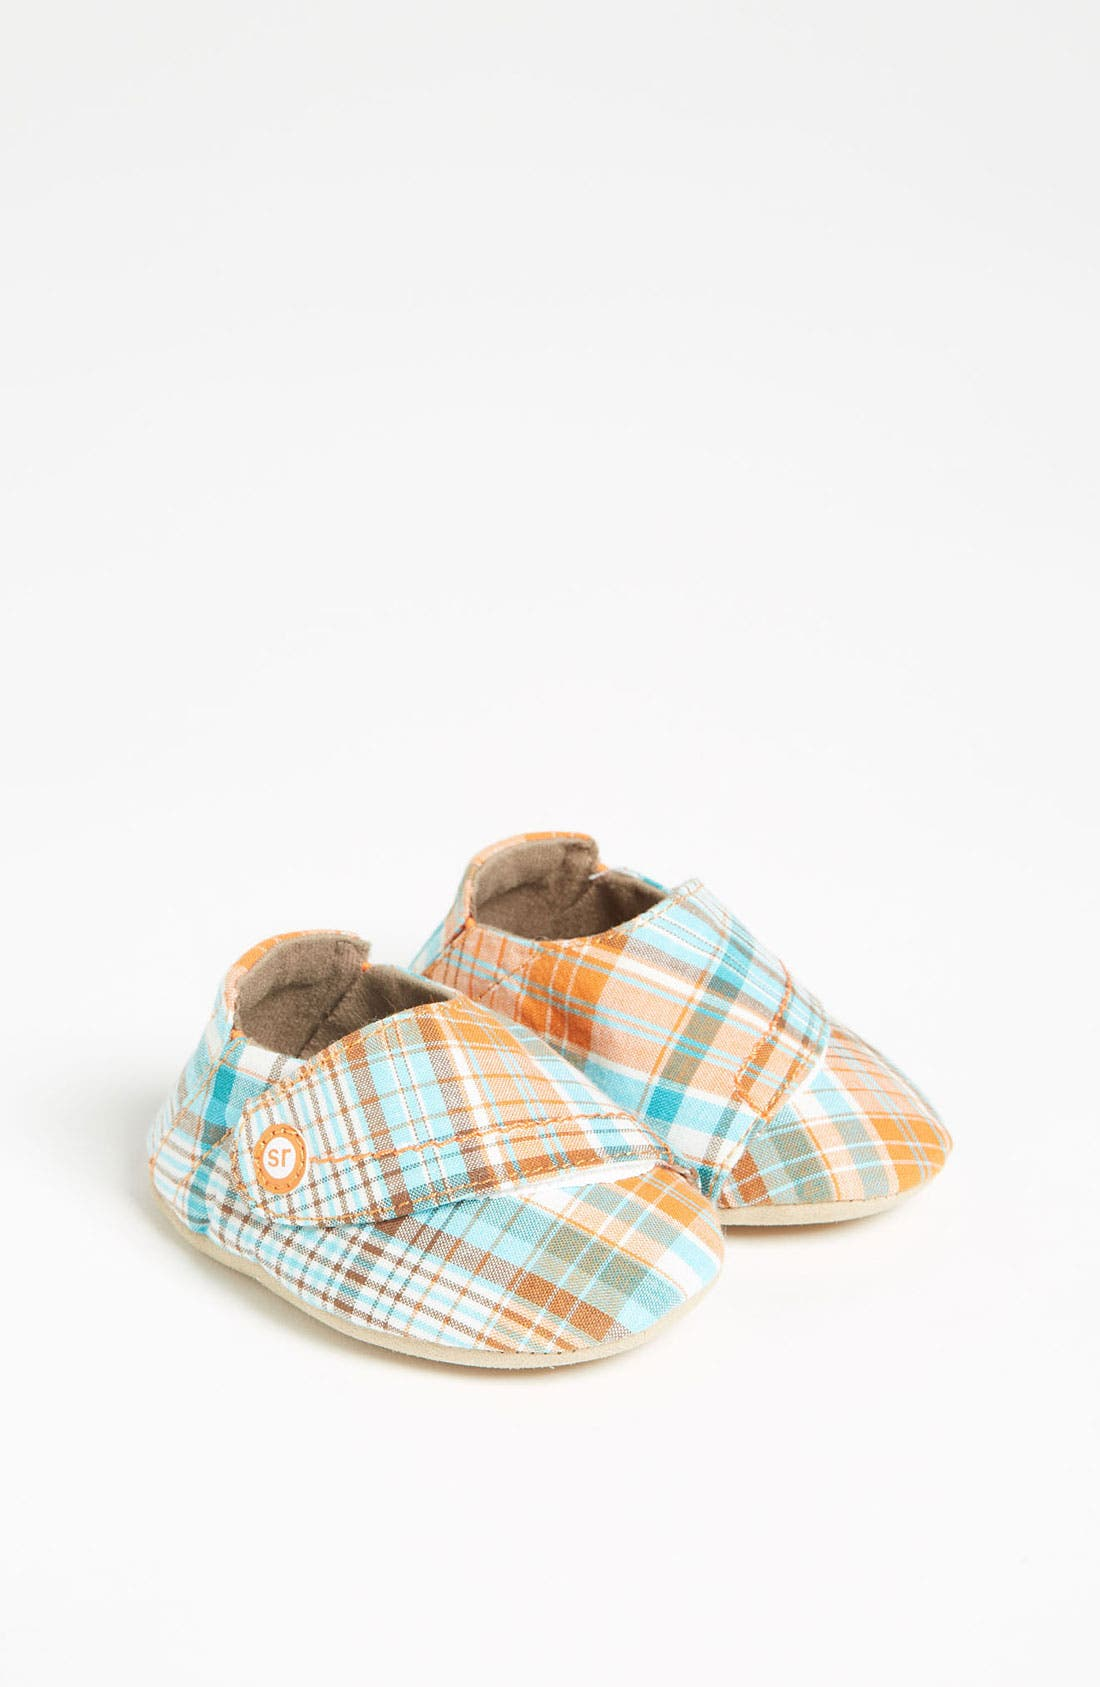 Alternate Image 1 Selected - Stride Rite 'Mad For Plaid' Crib Shoe (Baby)